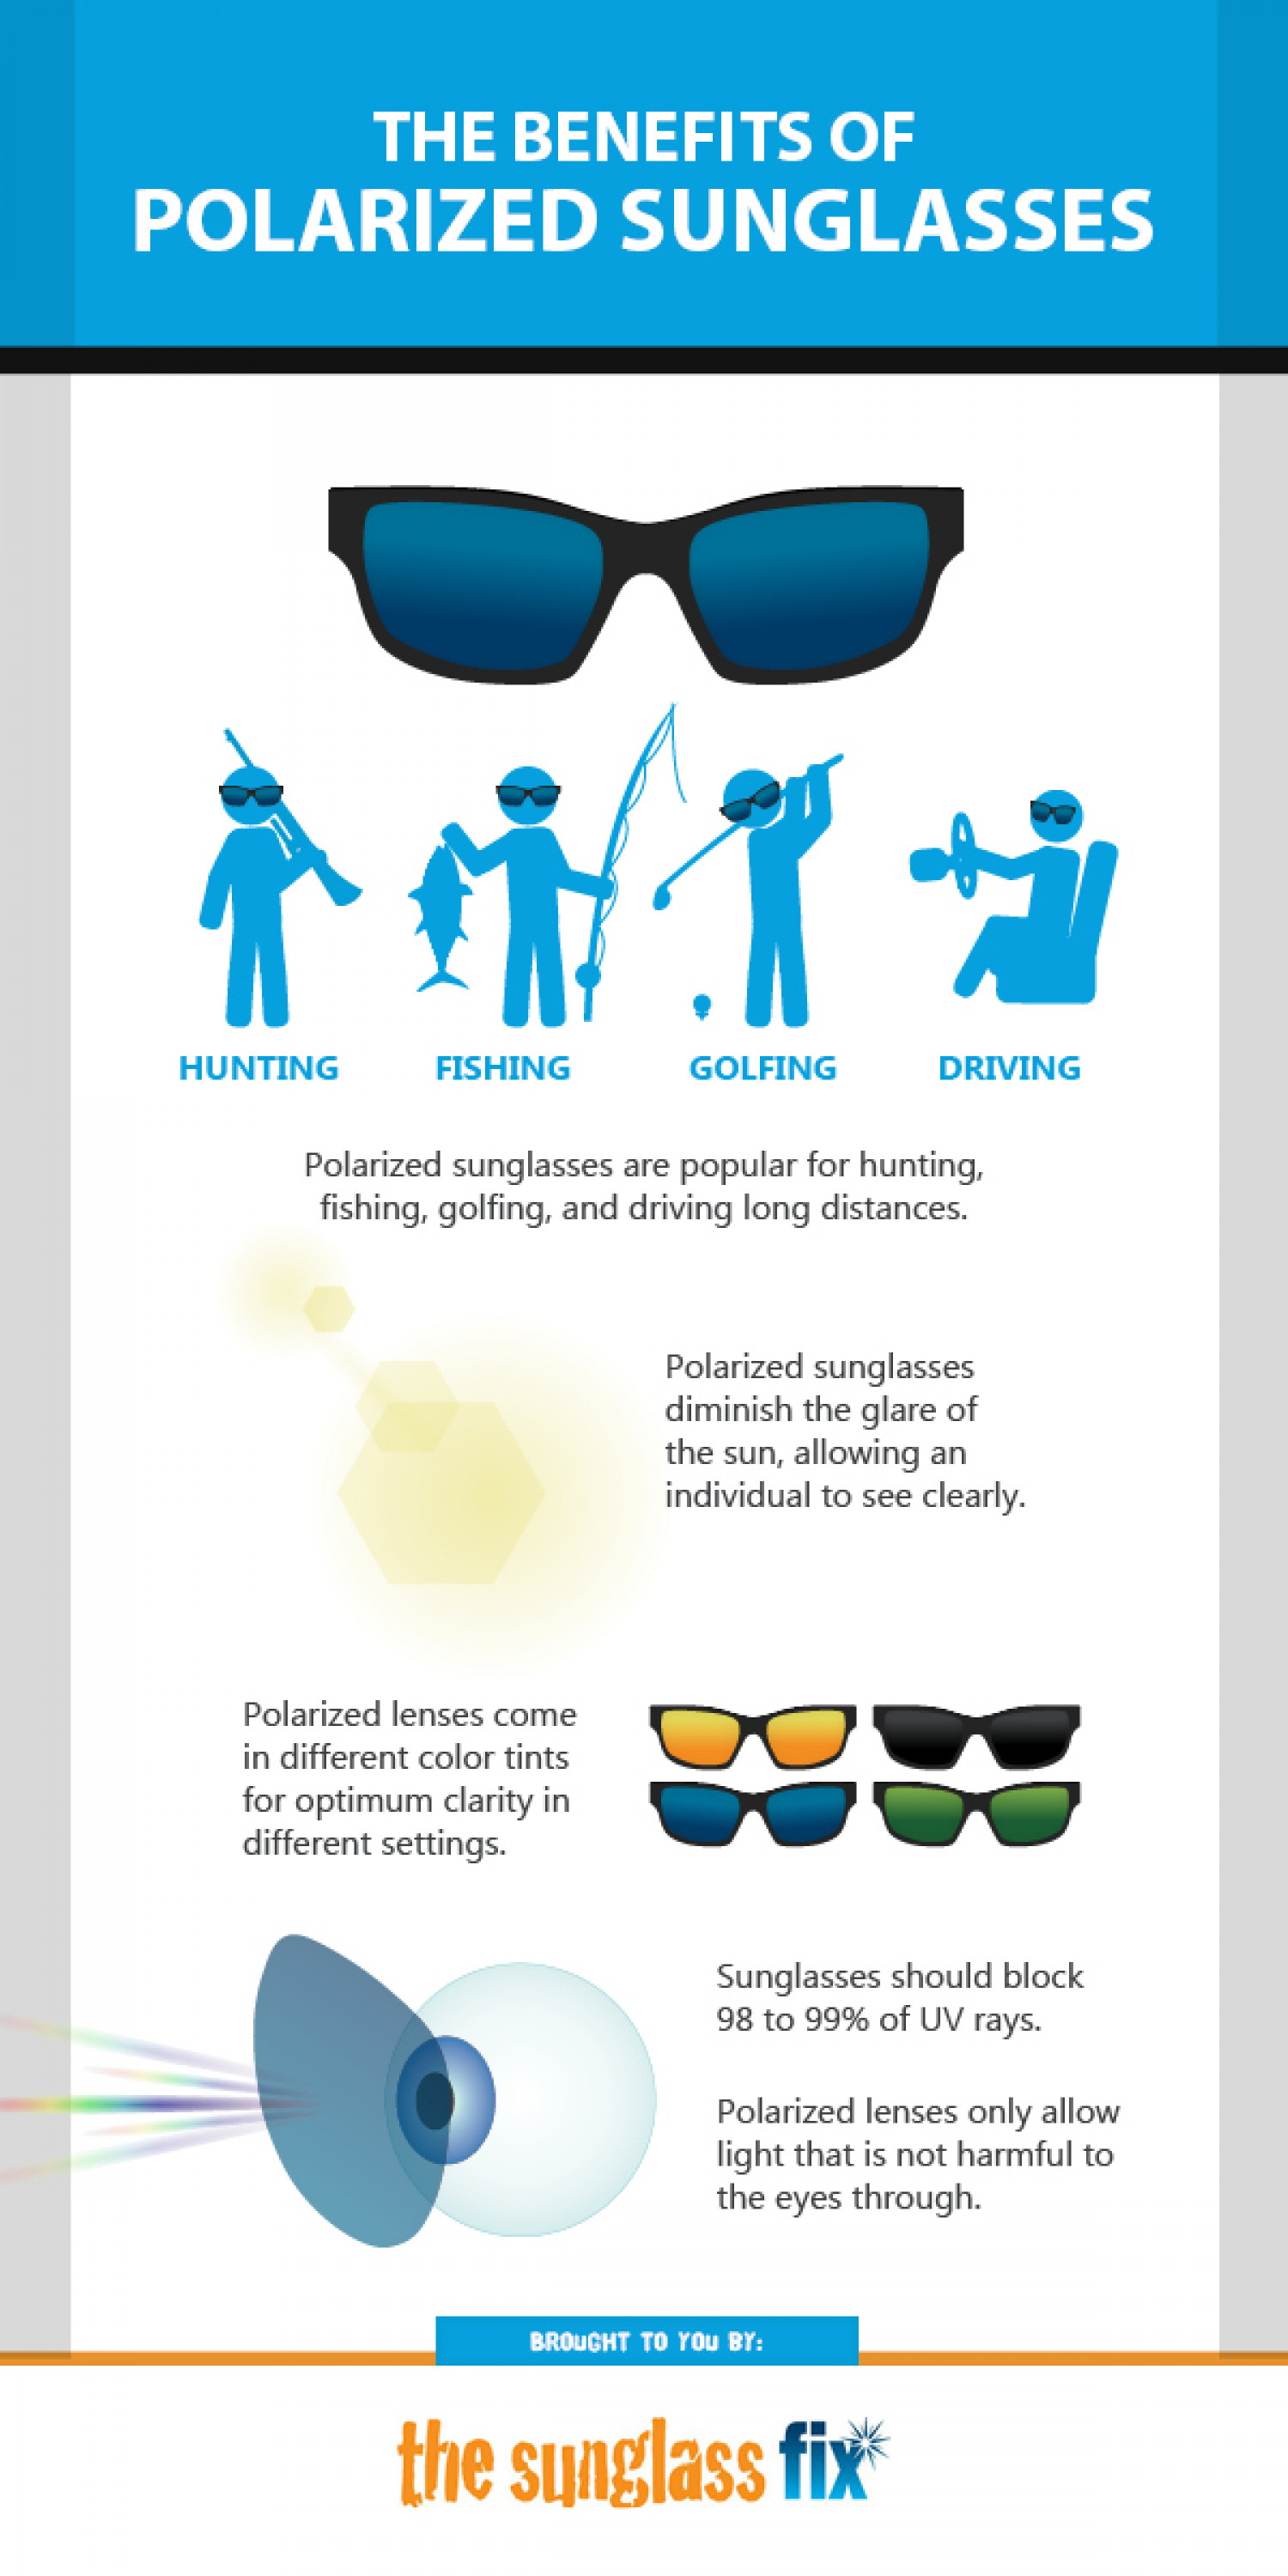 The Benefits of Polarized Sunglasses Infographic